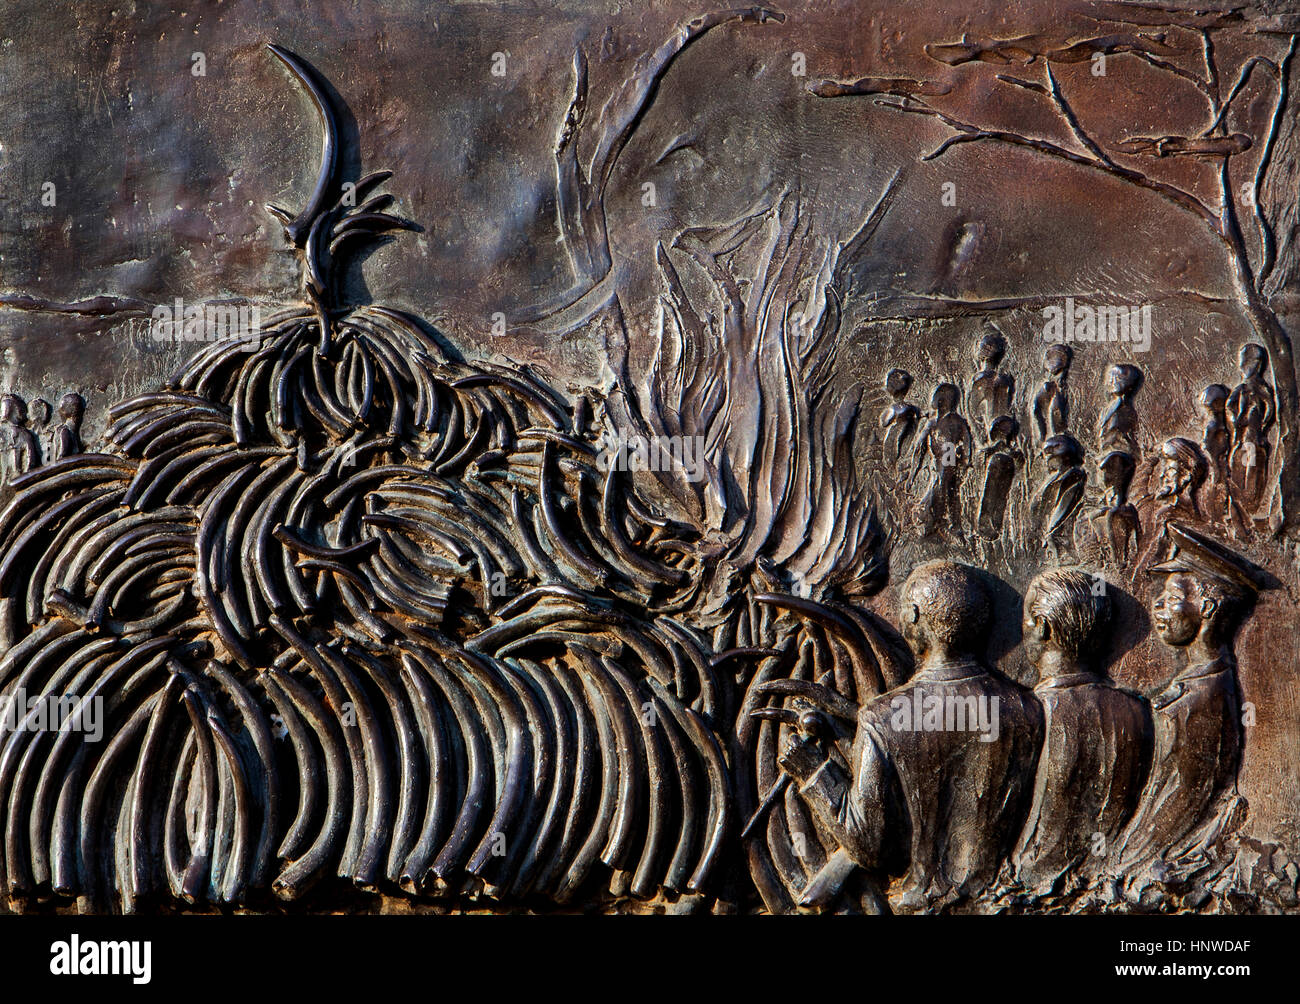 Detail, This monument which conmemorates the burning of 12 tons of ivory by H.E president Daniel T on July 18th - Stock Image